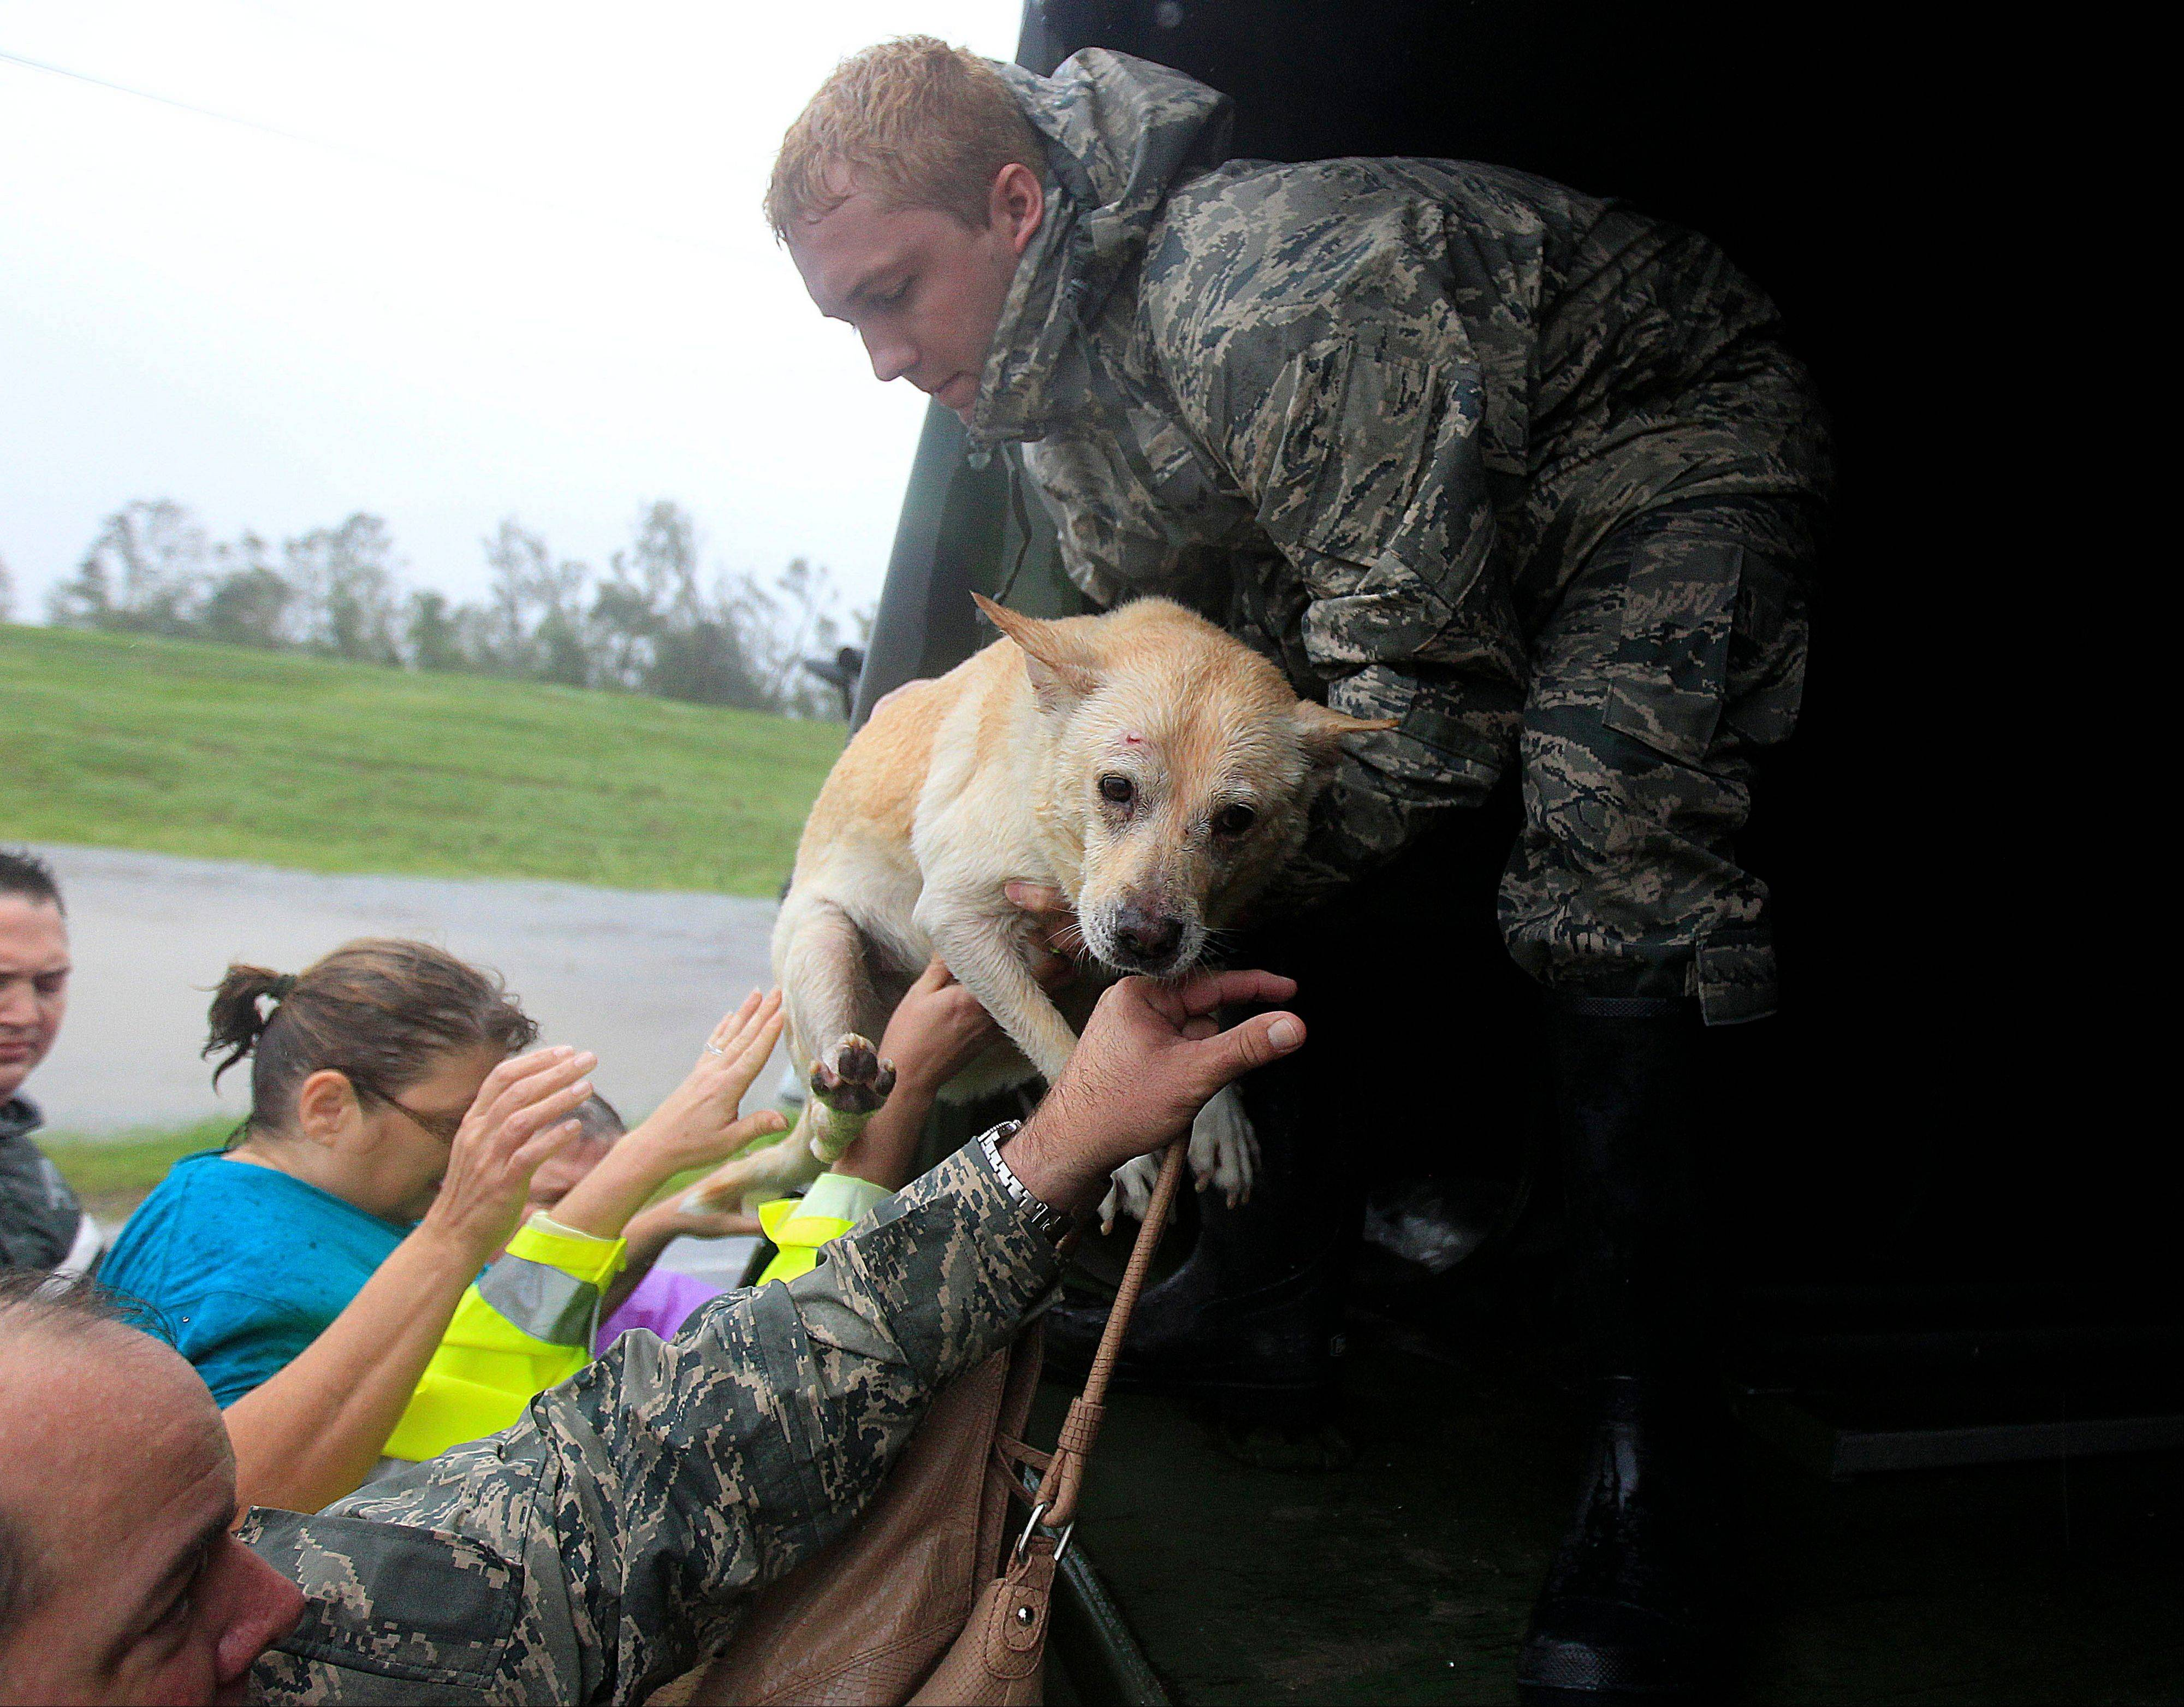 People and a dog who were rescued from their flooded homes are loaded into a Louisiana National Guard truck, after Hurricane Isaac made landfall and flooded homes with 10 feet of water in Braithwaite, La., in Plaquemines Parish Wednesday, Aug. 29, 2012.